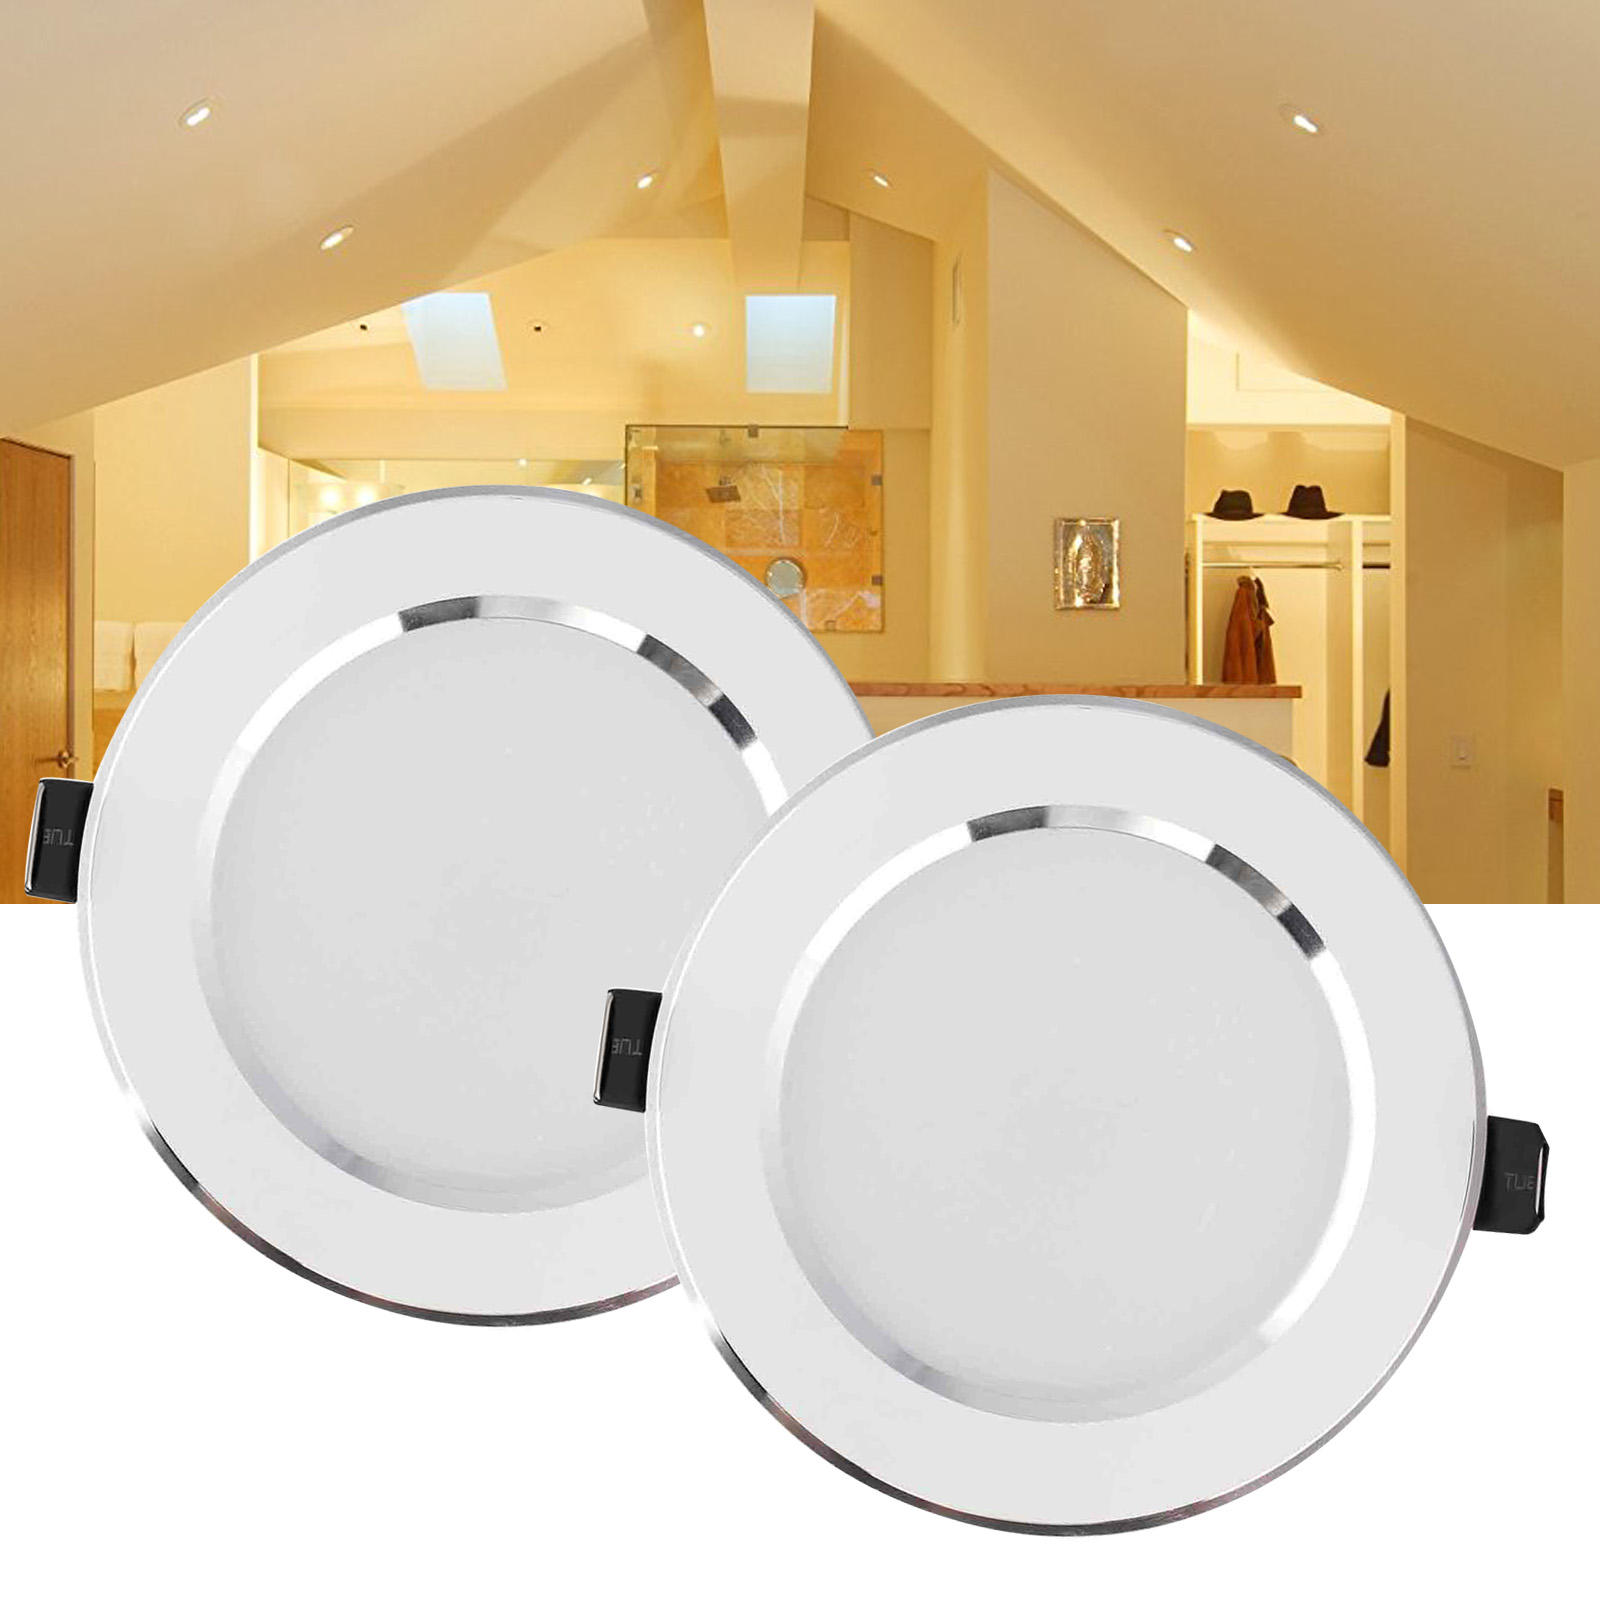 Dimbare LED Inbouw Plafond Downlight 7W Warm Wit Lamp 220V + Driver Spot Light Indoor Verlichting Voor home Office Decor